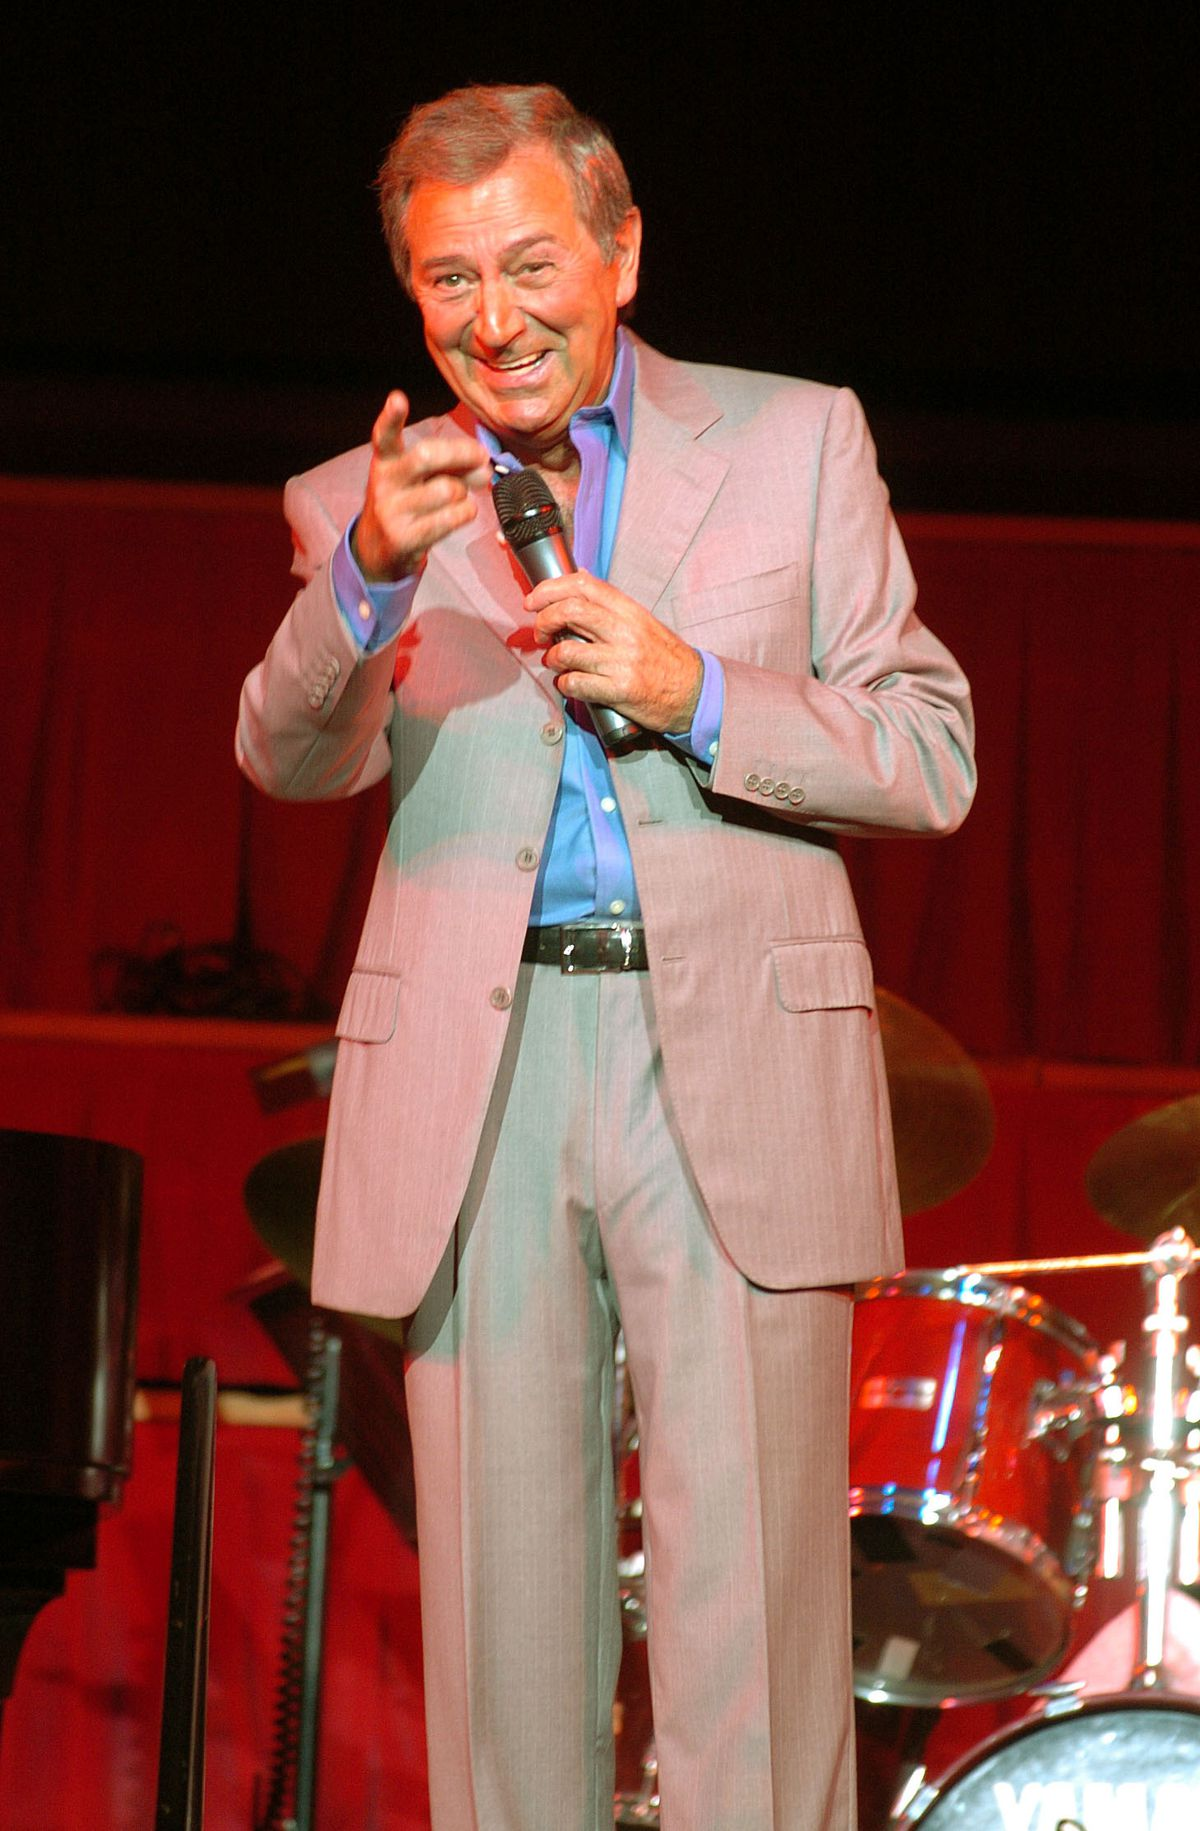 Des O'Connor on stage at Dudley Concert Hall in 2006